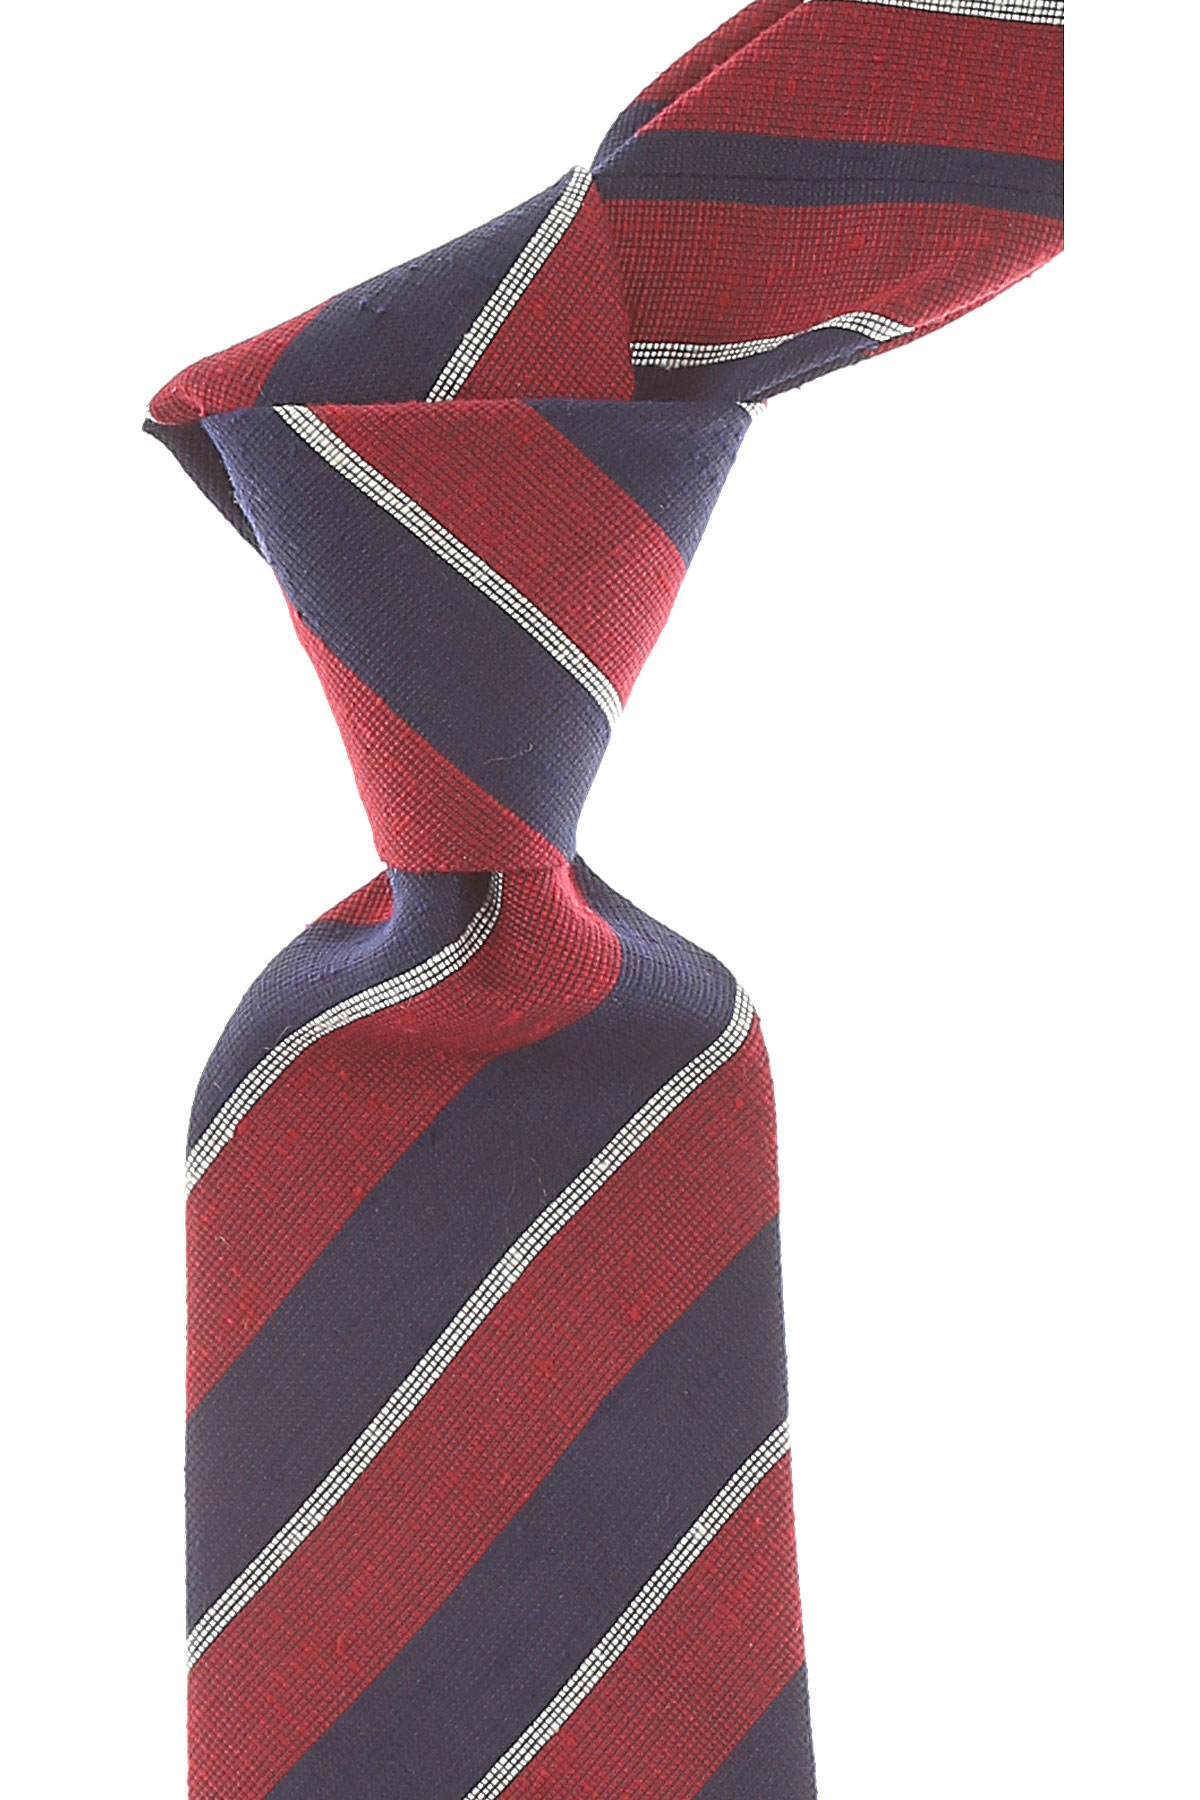 Giorgio_Armani_Ties_On_Sale_Red_Melange_Silk_2019